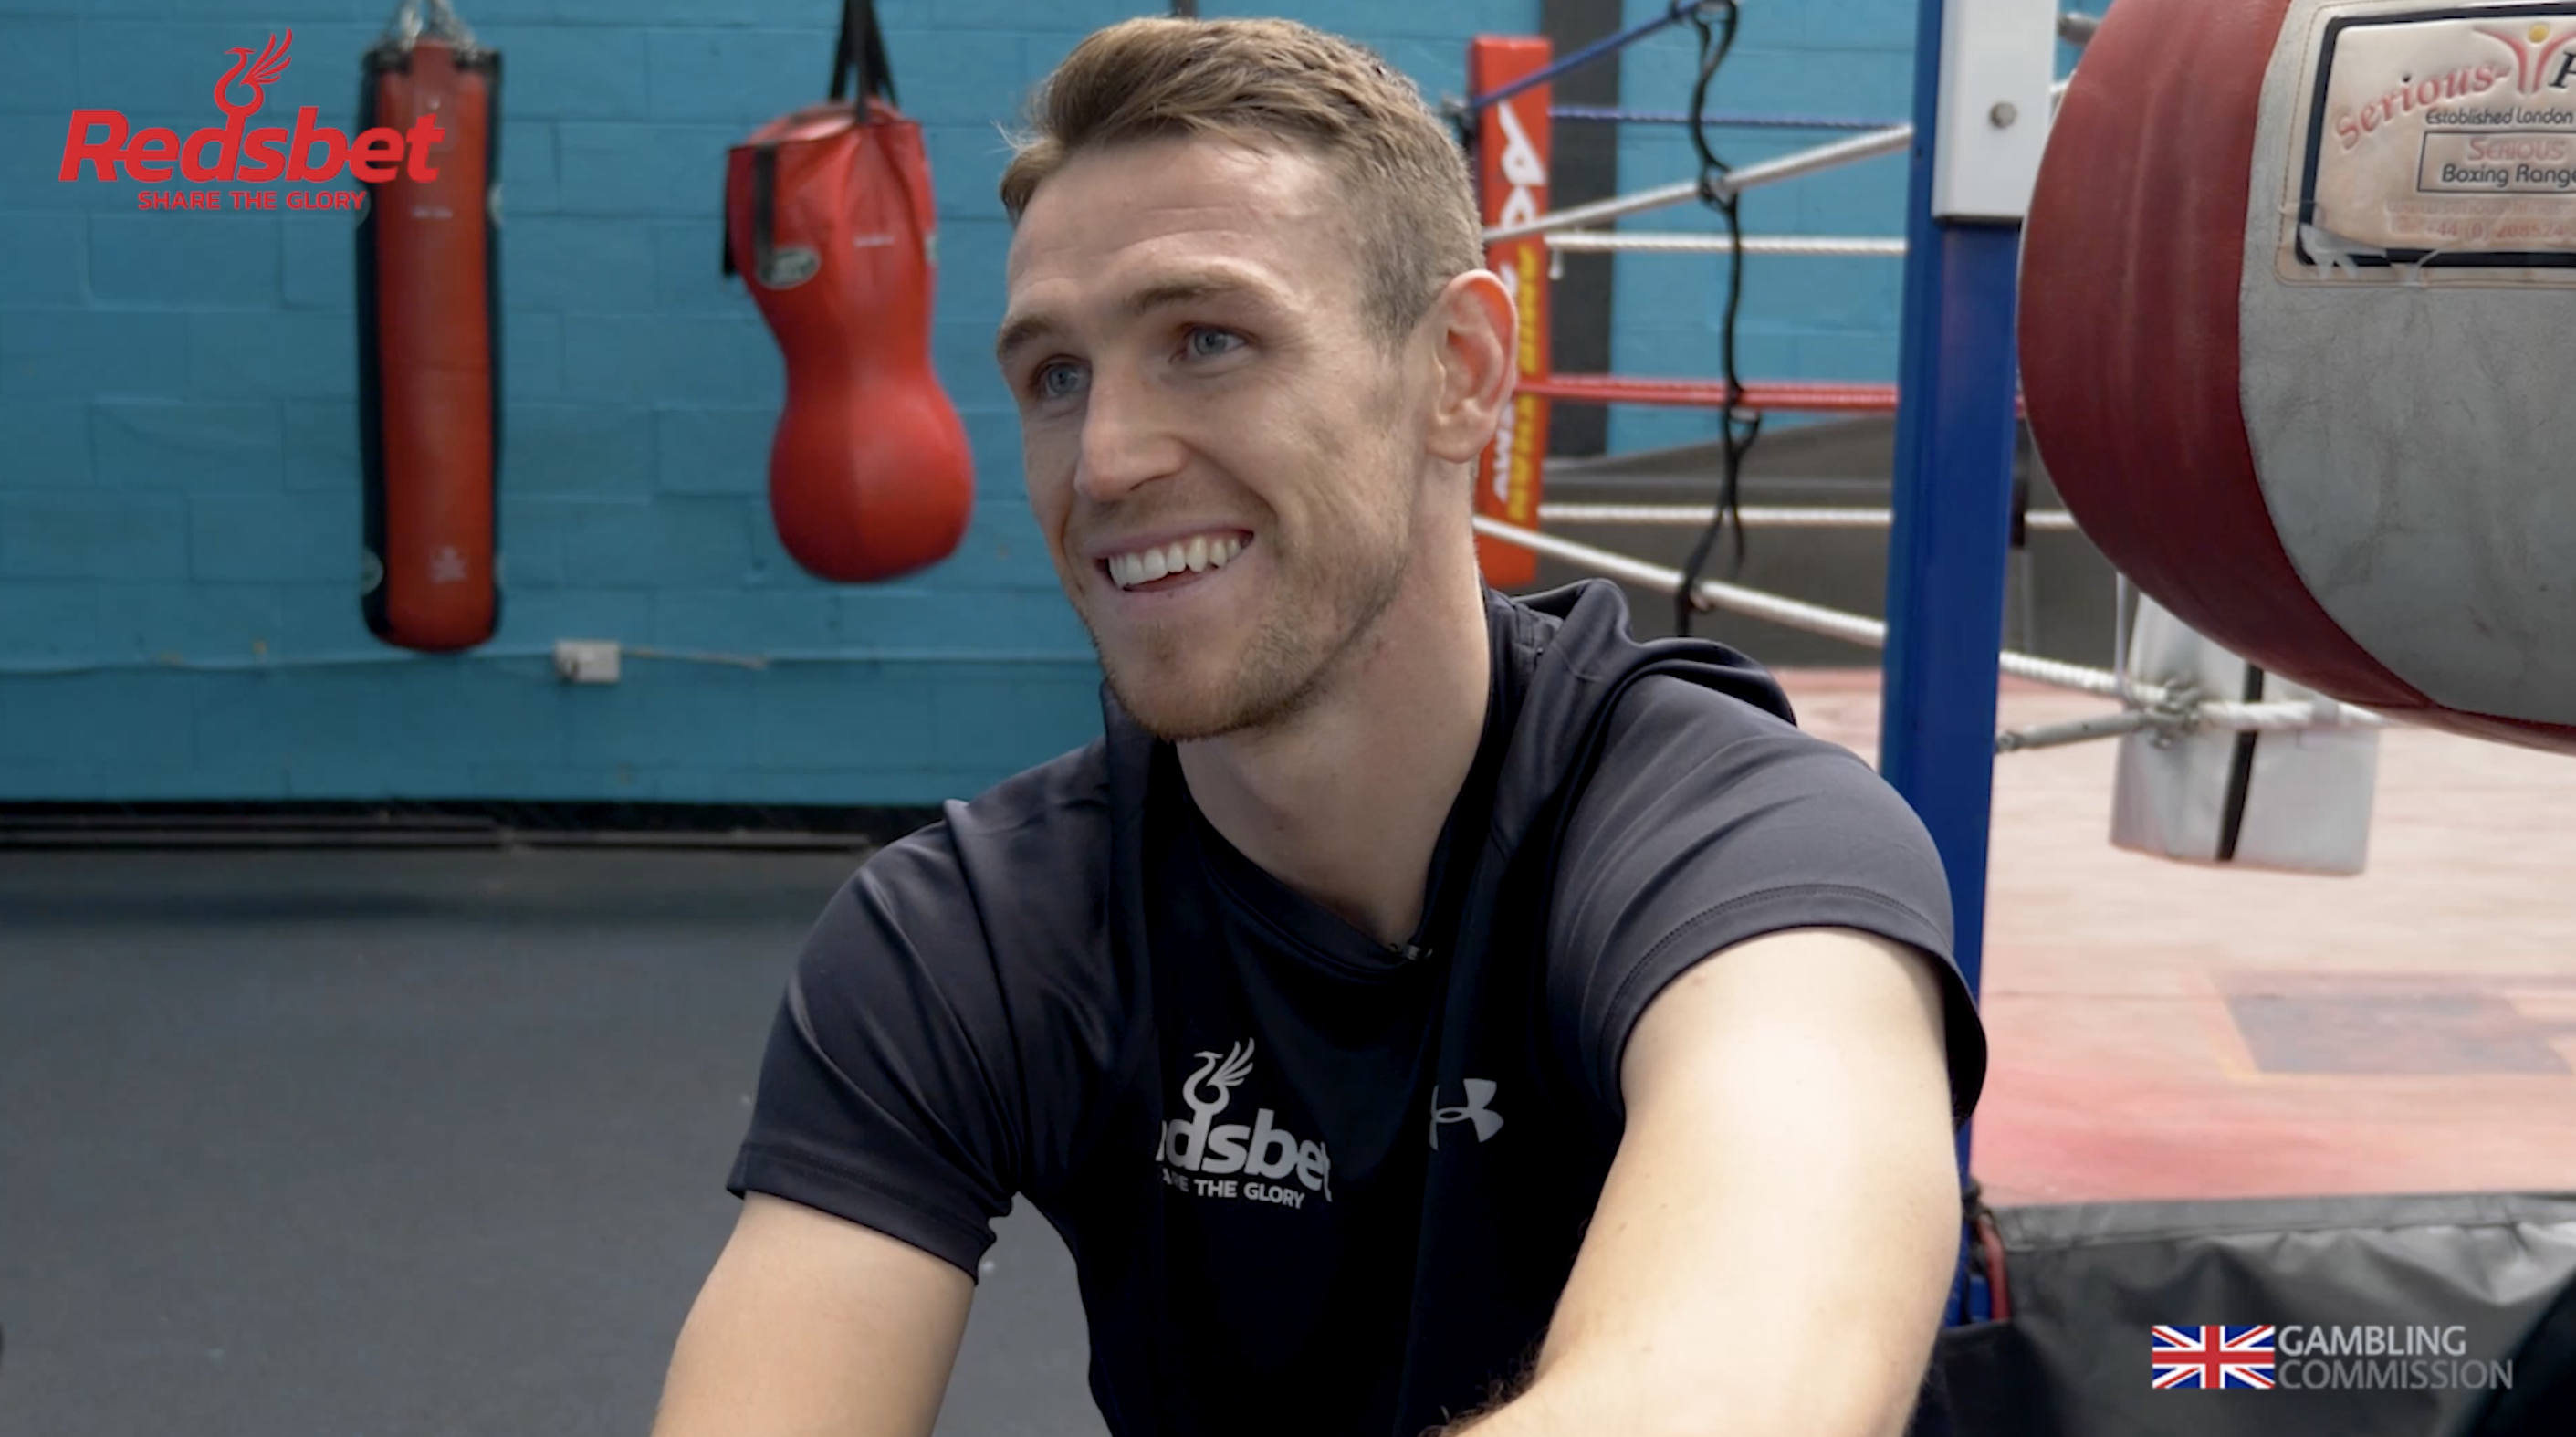 EXCLUSIVE INTERVIEW: RedsBet Ambassador Callum Smith talks to us ahead of World Title showdown with George Groves